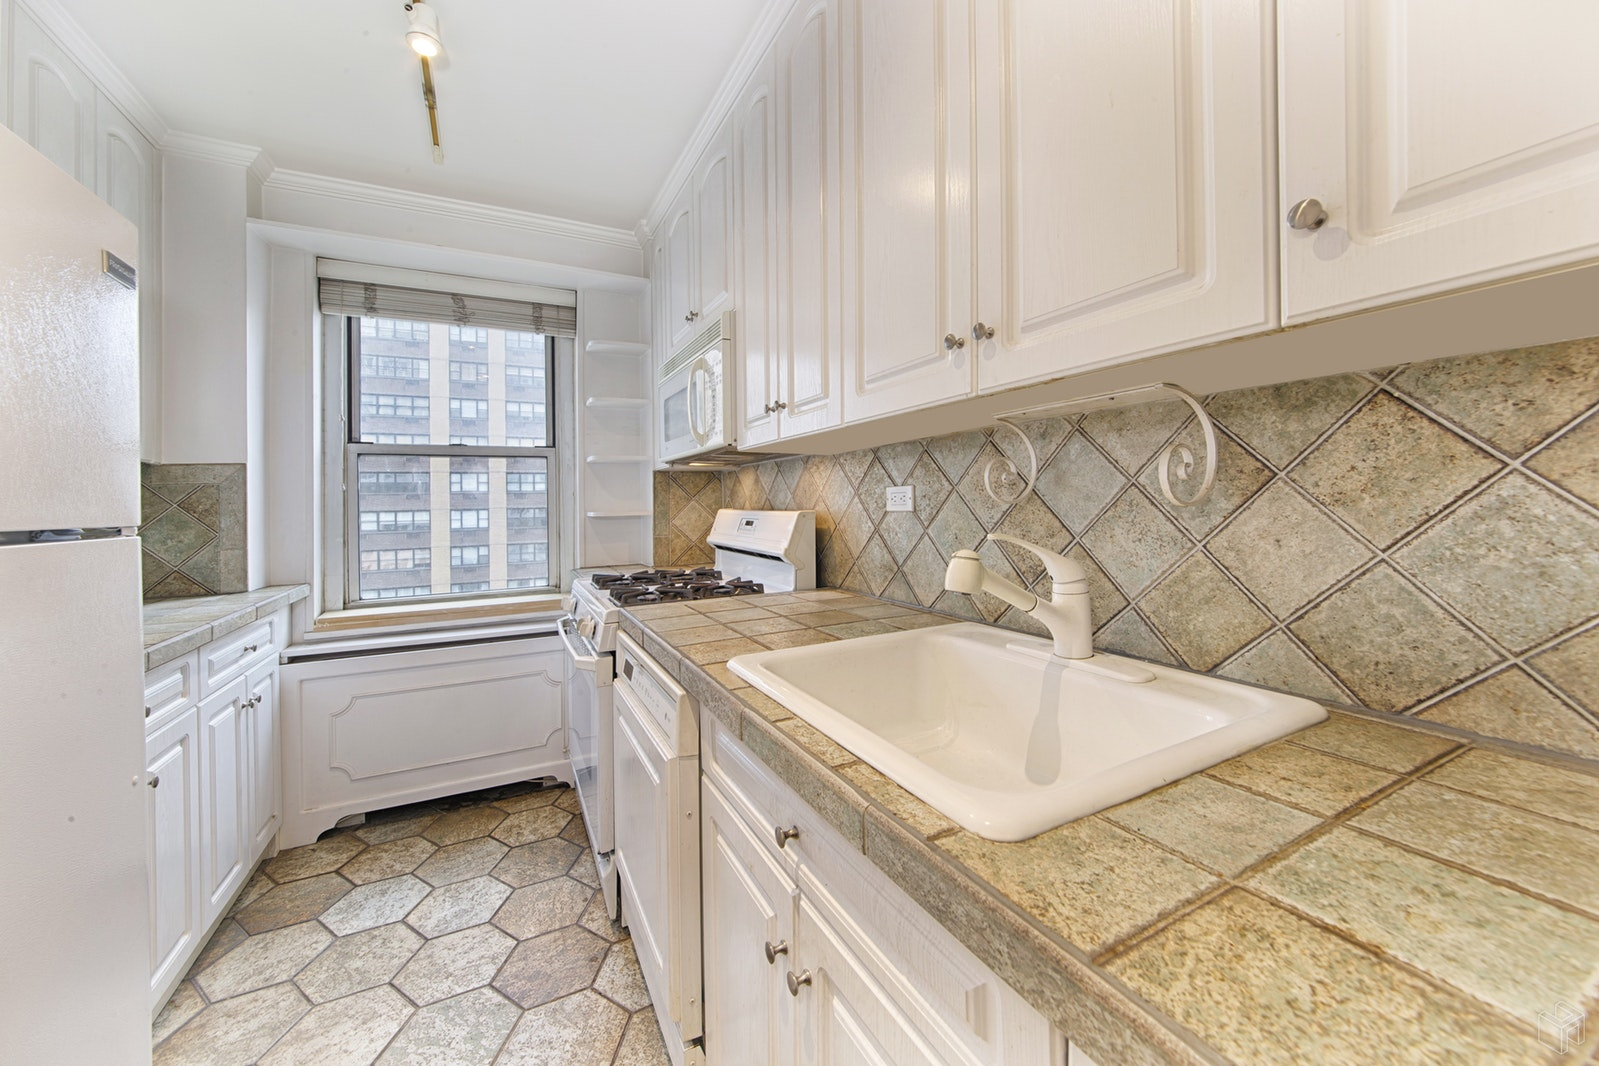 201 EAST 79TH STREET 8F, Upper East Side, $1,395,000, Web #: 19050486